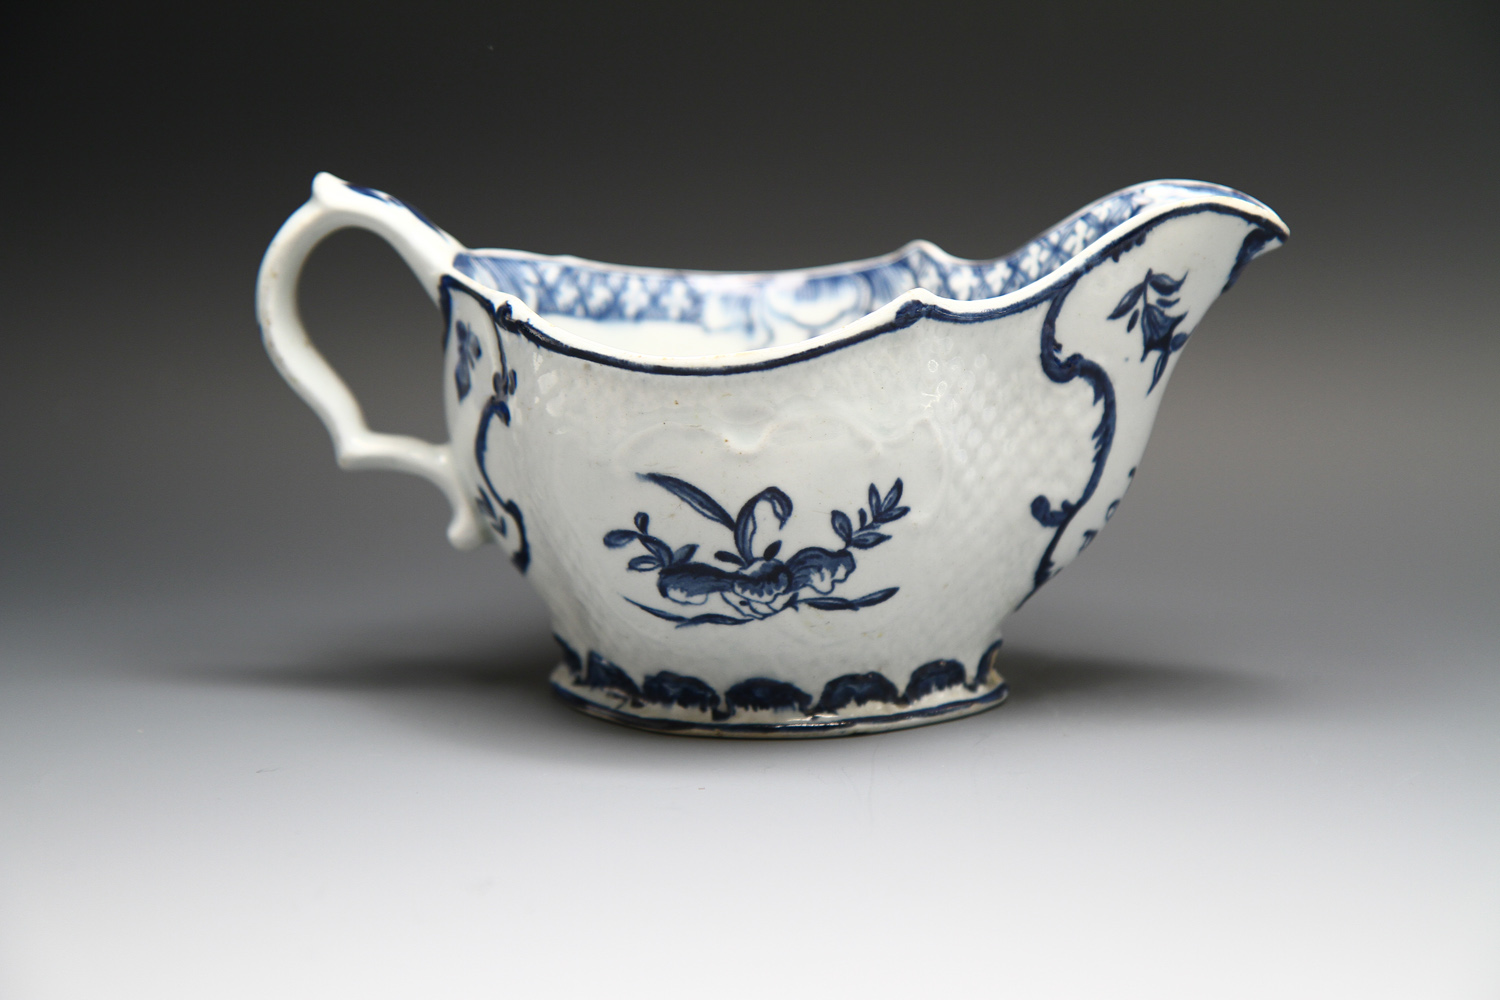 1122 - A rare Bow sauceboat possibly copying Liverpool, c 1765-70